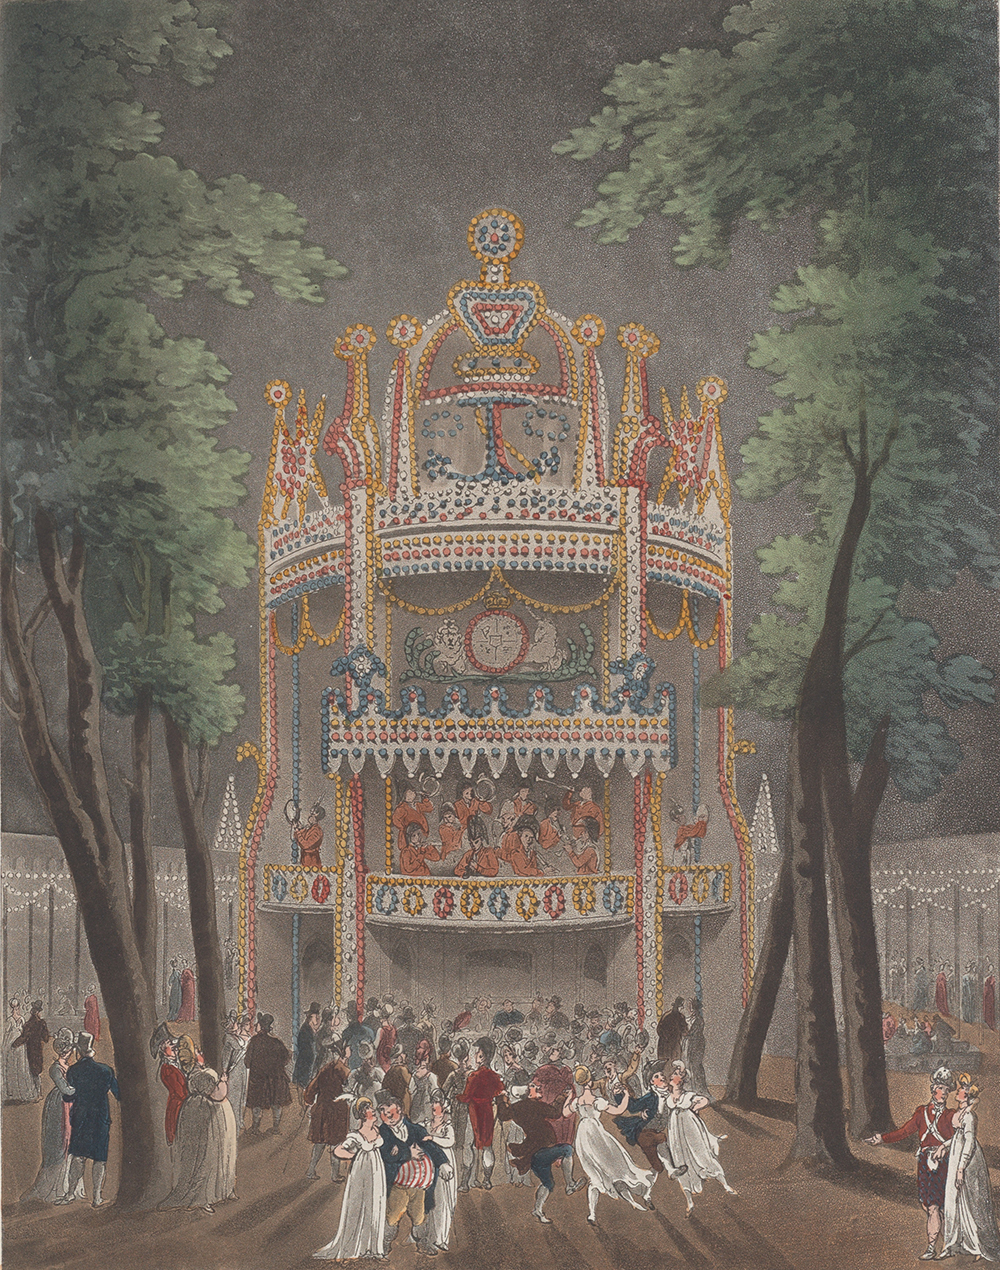 Vauxhall Garden, by Thomas Rowlandson, 1809. The Metropolitan Museum of Art, The Elisha Whittelsey Collection, The Elisha Whittelsey Fund, 1959.